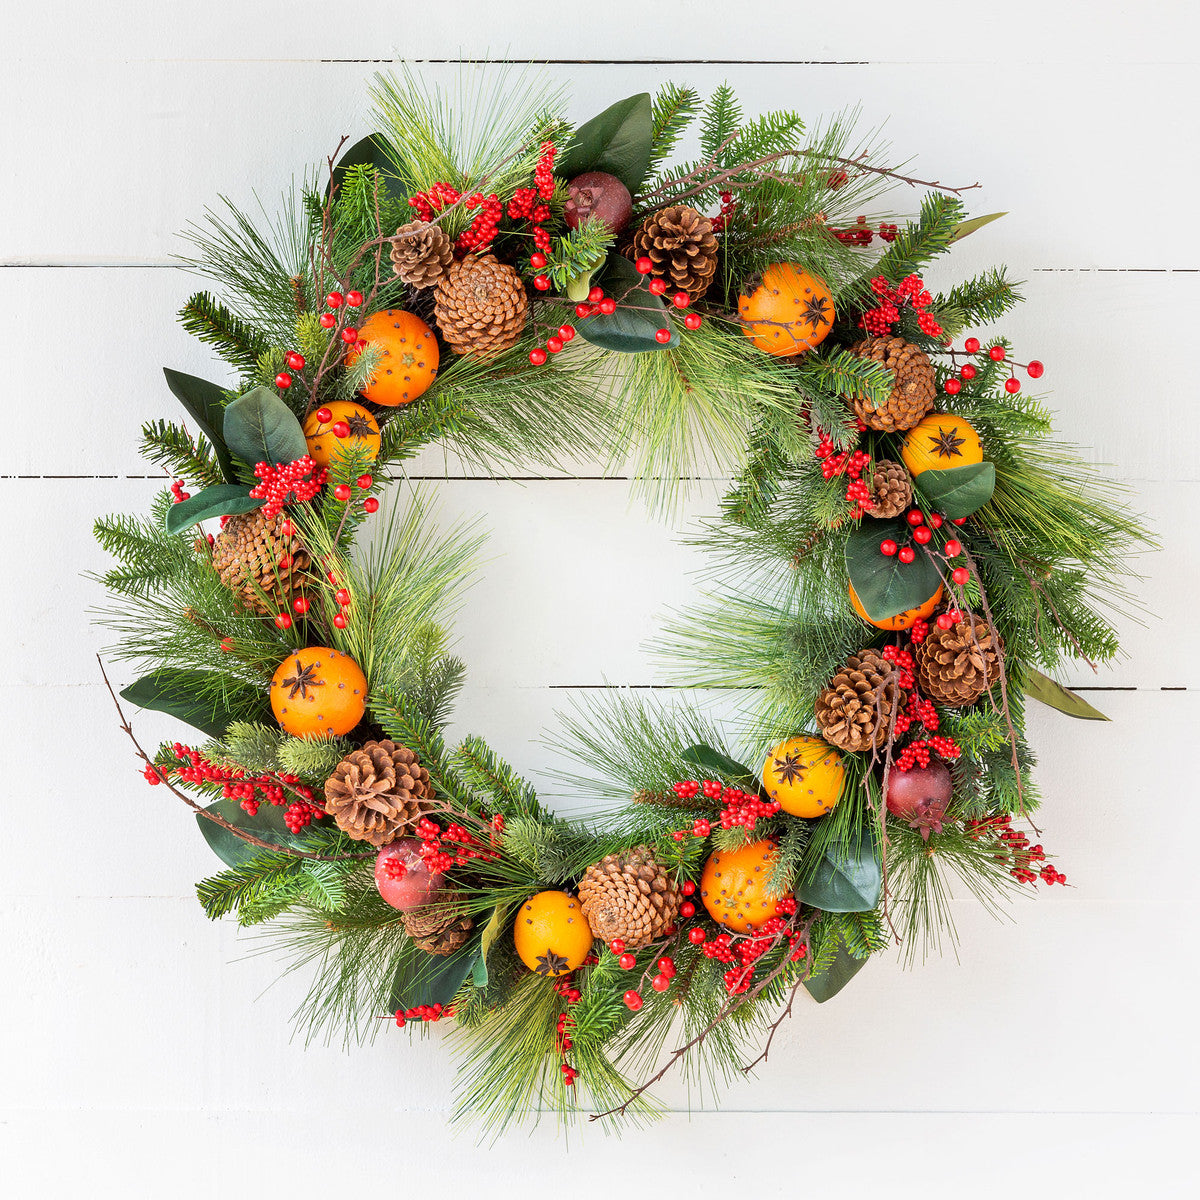 Cloved Fruit And Pine Wreath